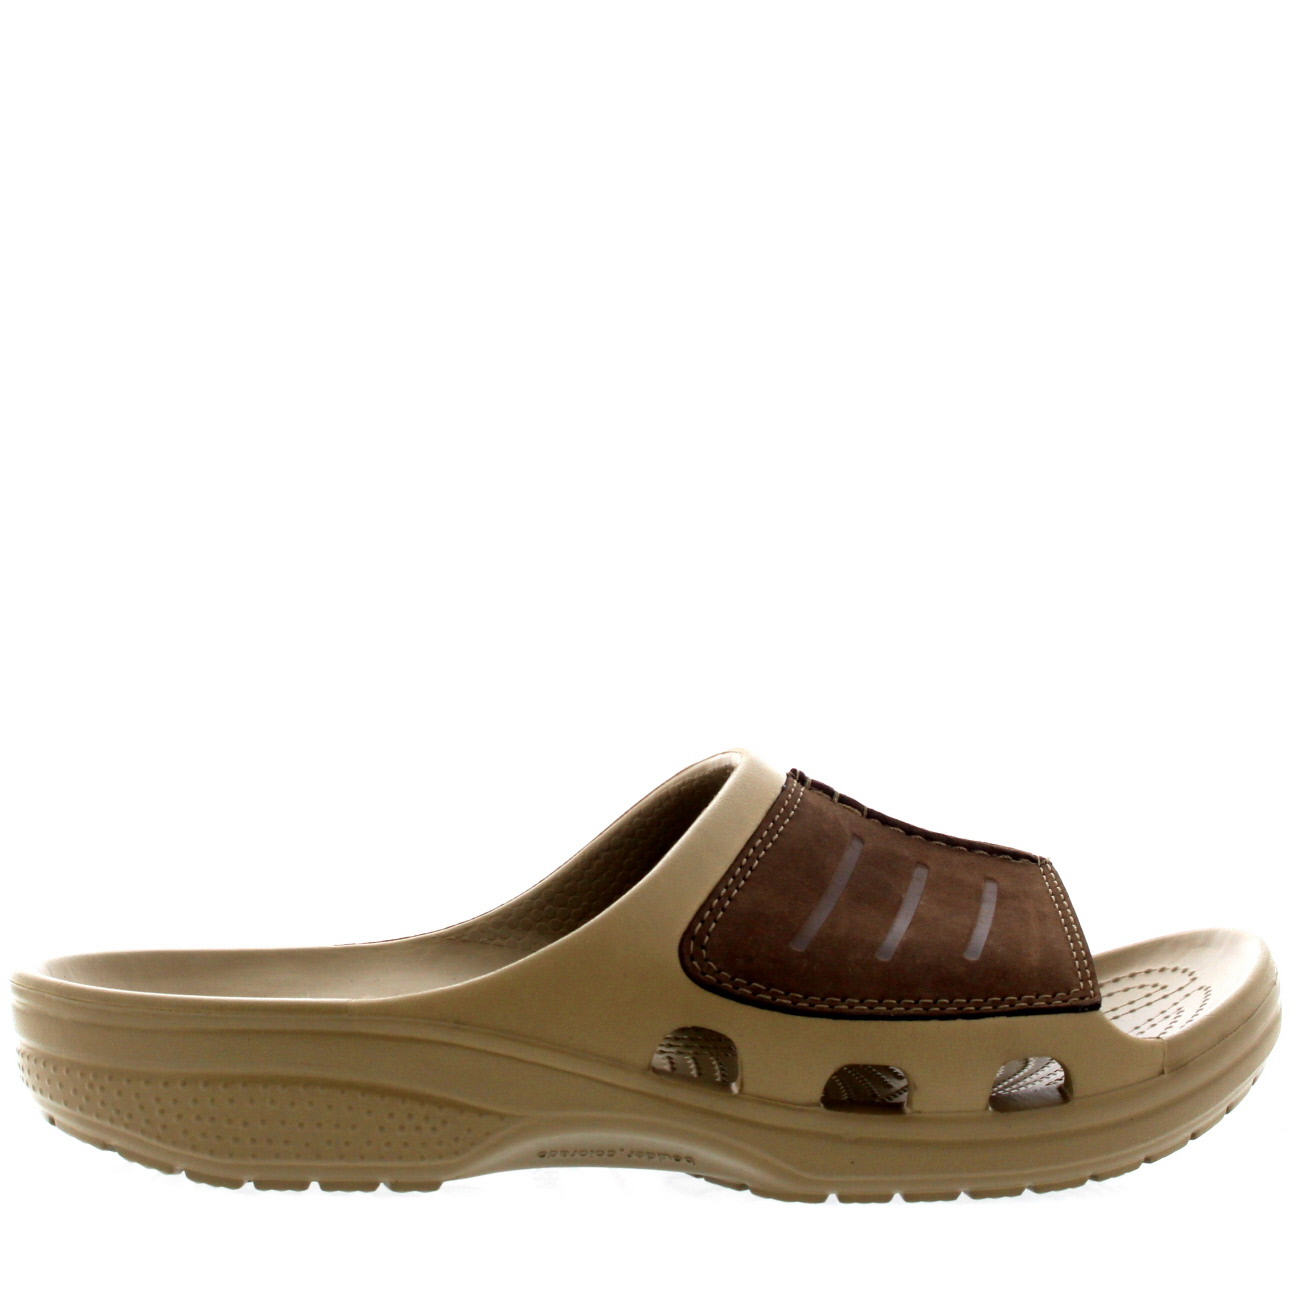 Sandals shoes holidays - Mens Crocs Yukon Mesa Slide Summer Comfort Mules Holiday Sandals Shoes All Sizes